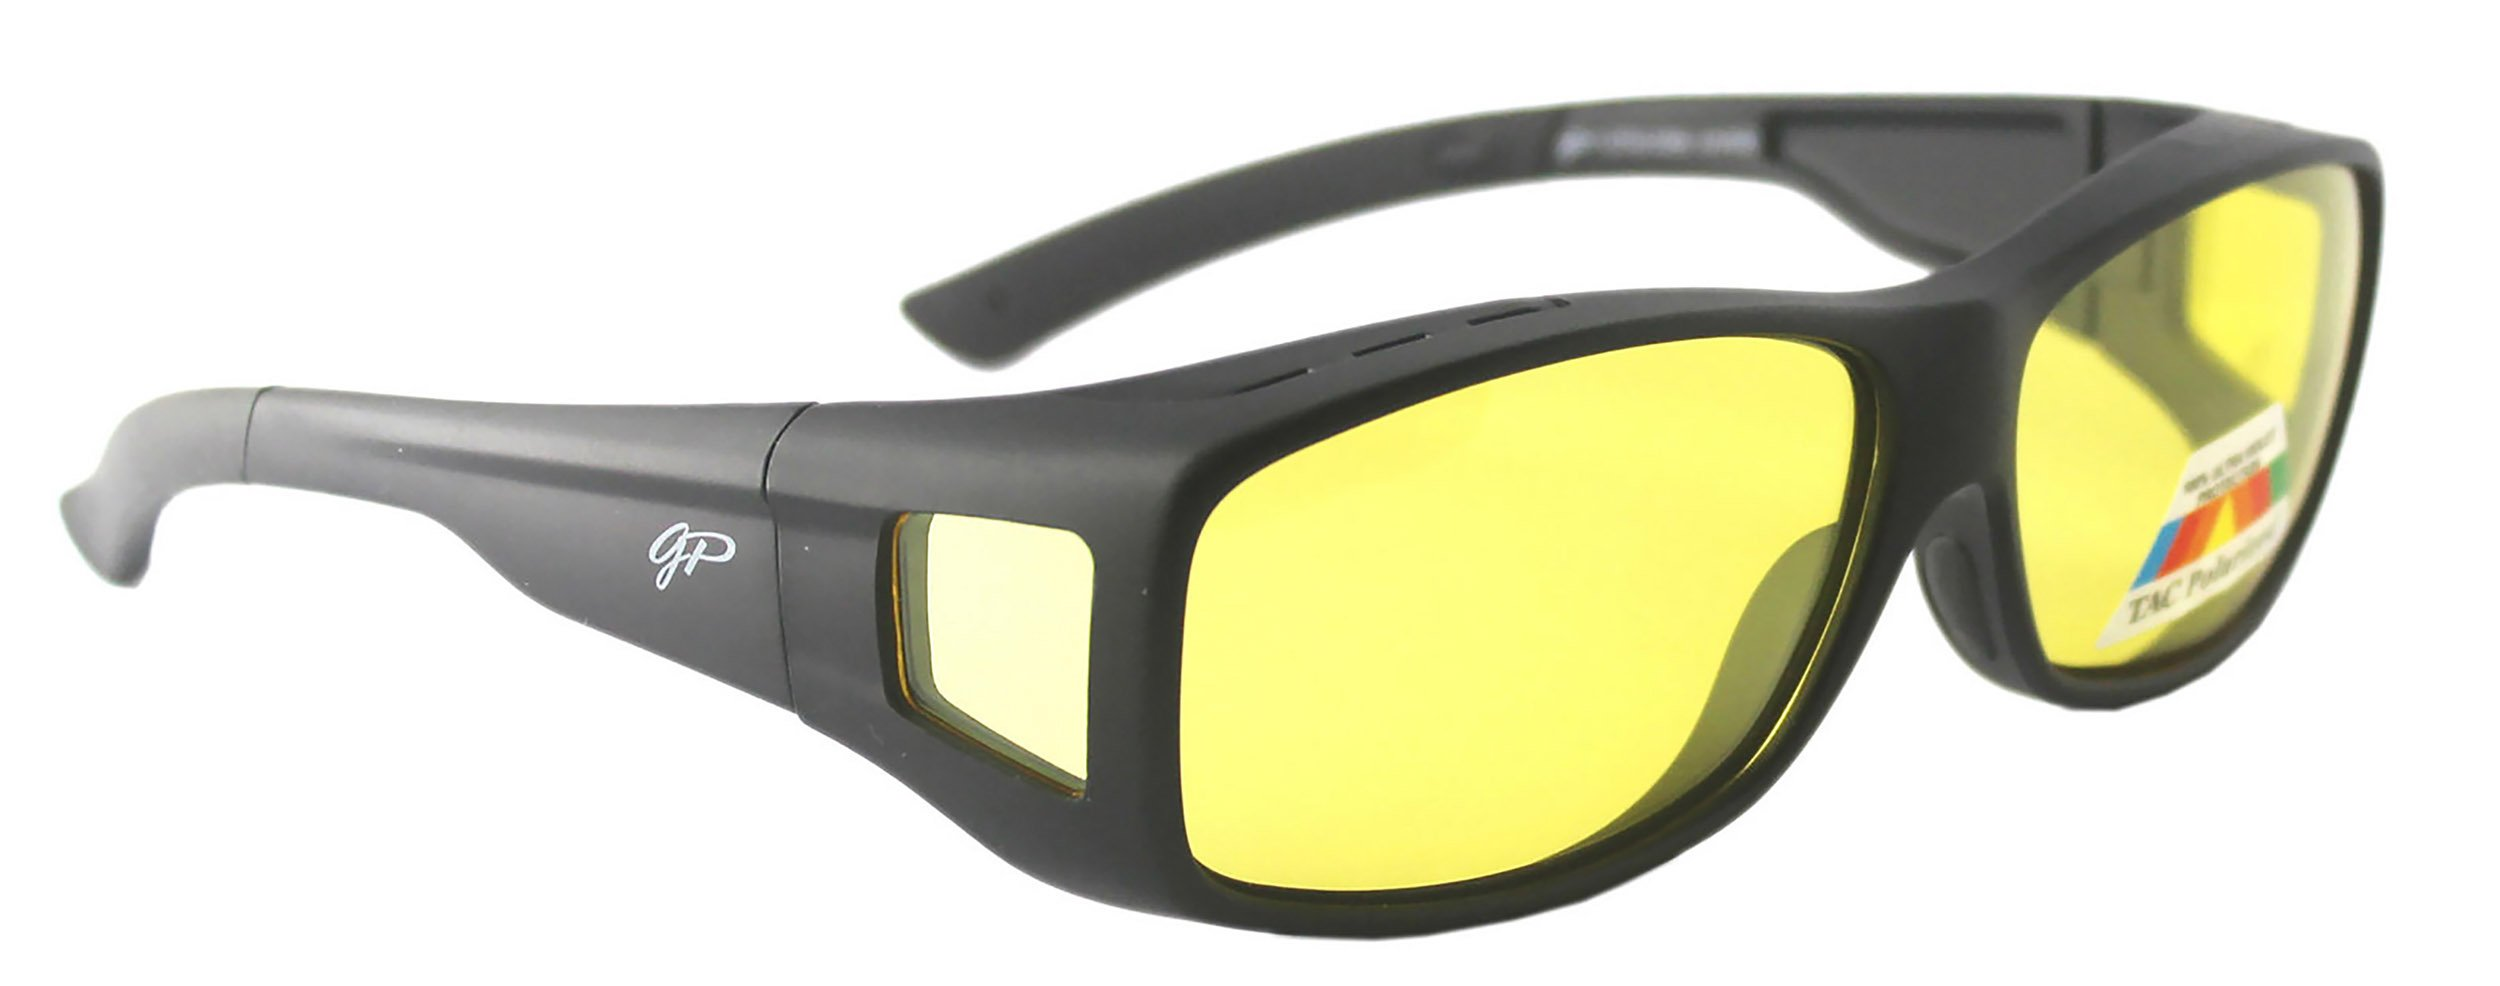 GREAT PICK Fit Over Night Vision Glasses Polarized to Wear Over Glasses + car clip holder